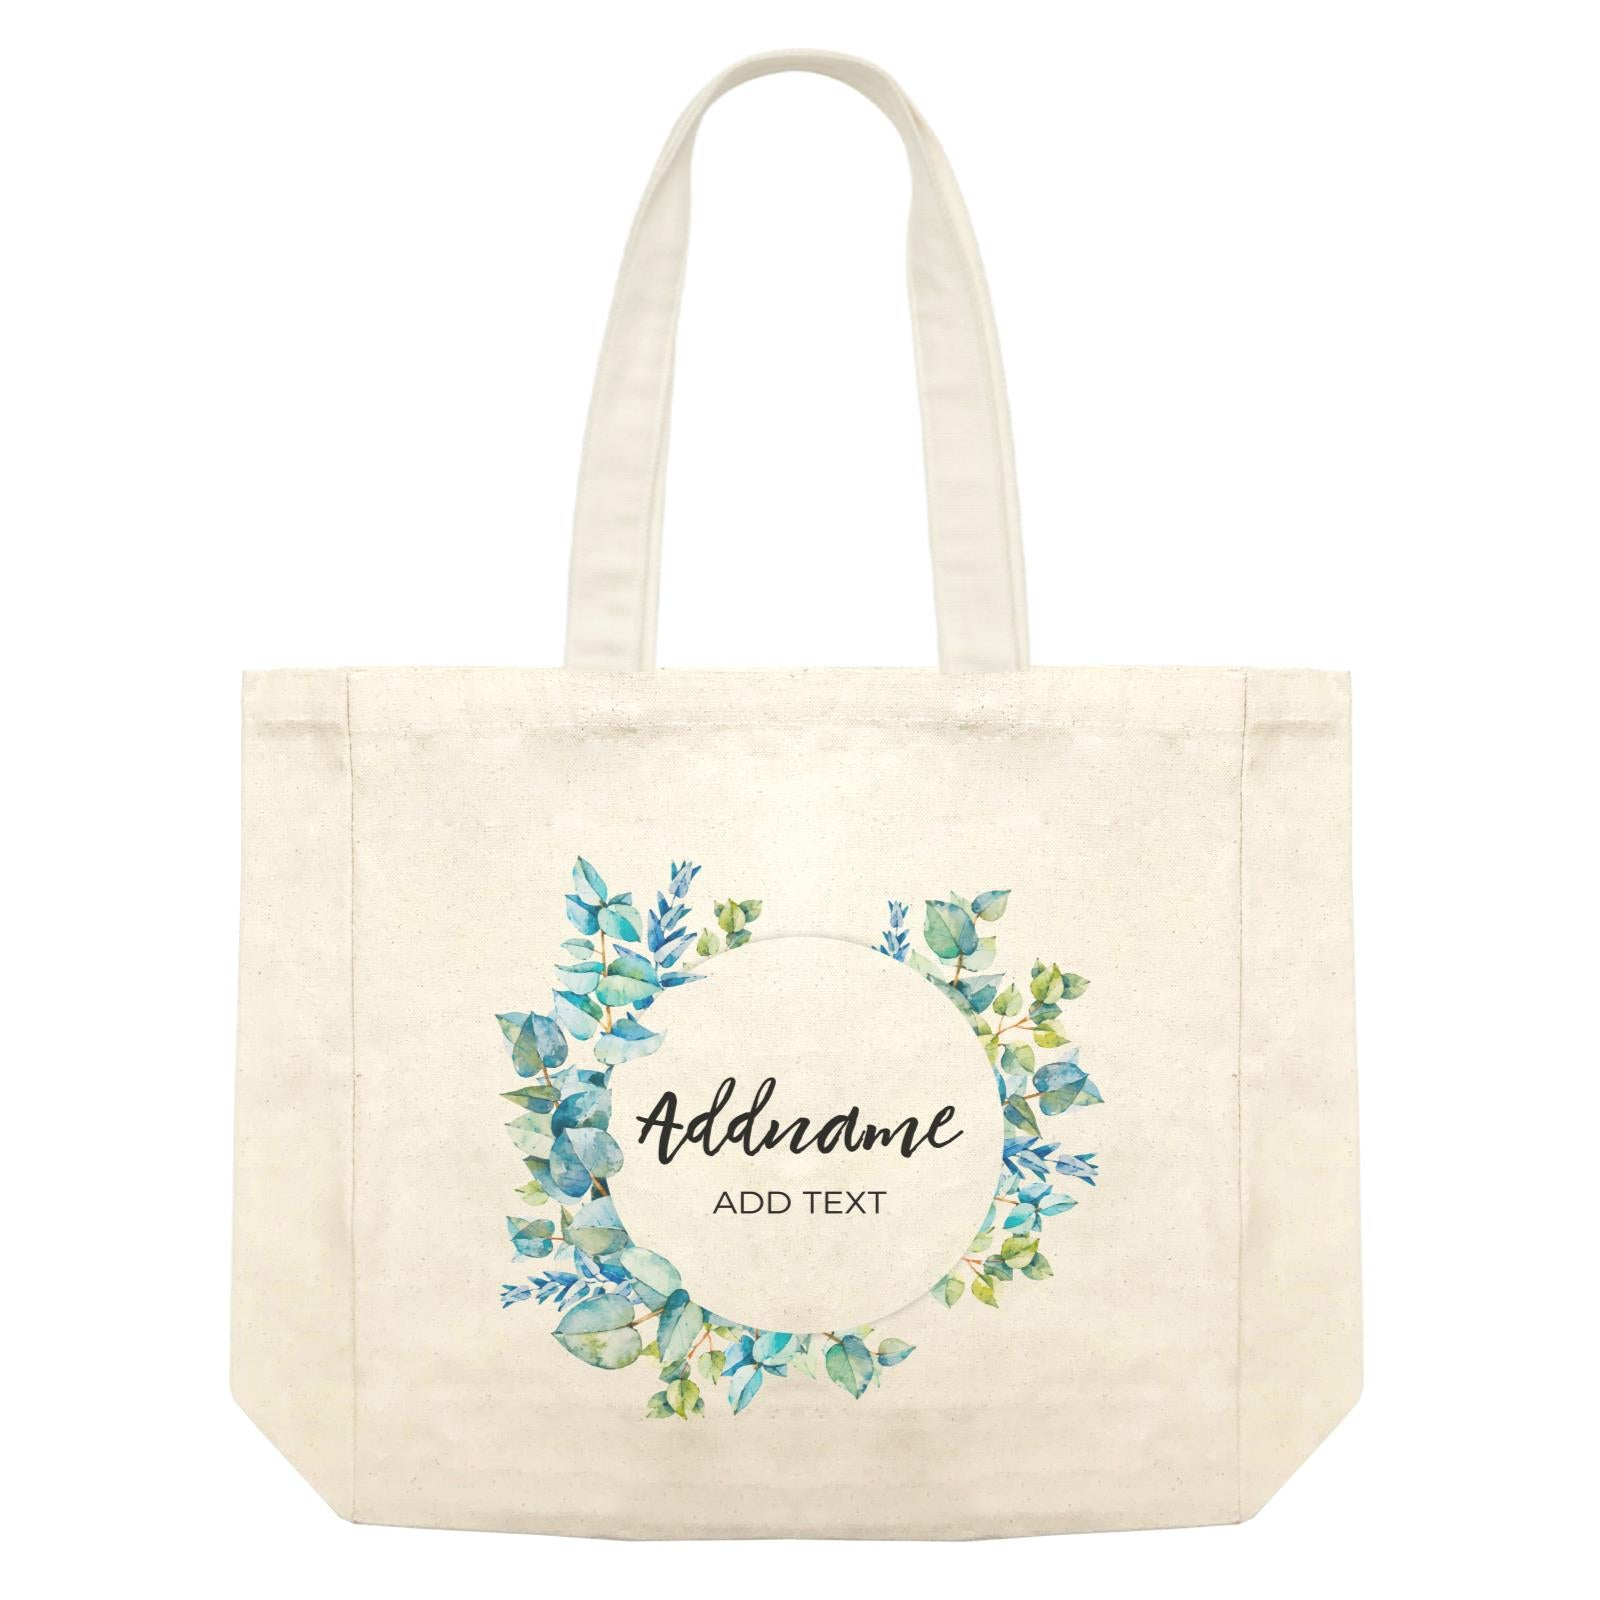 Add Your Own Text Teacher Blue Leaves Wreath Addname And Add Text Shopping Bag